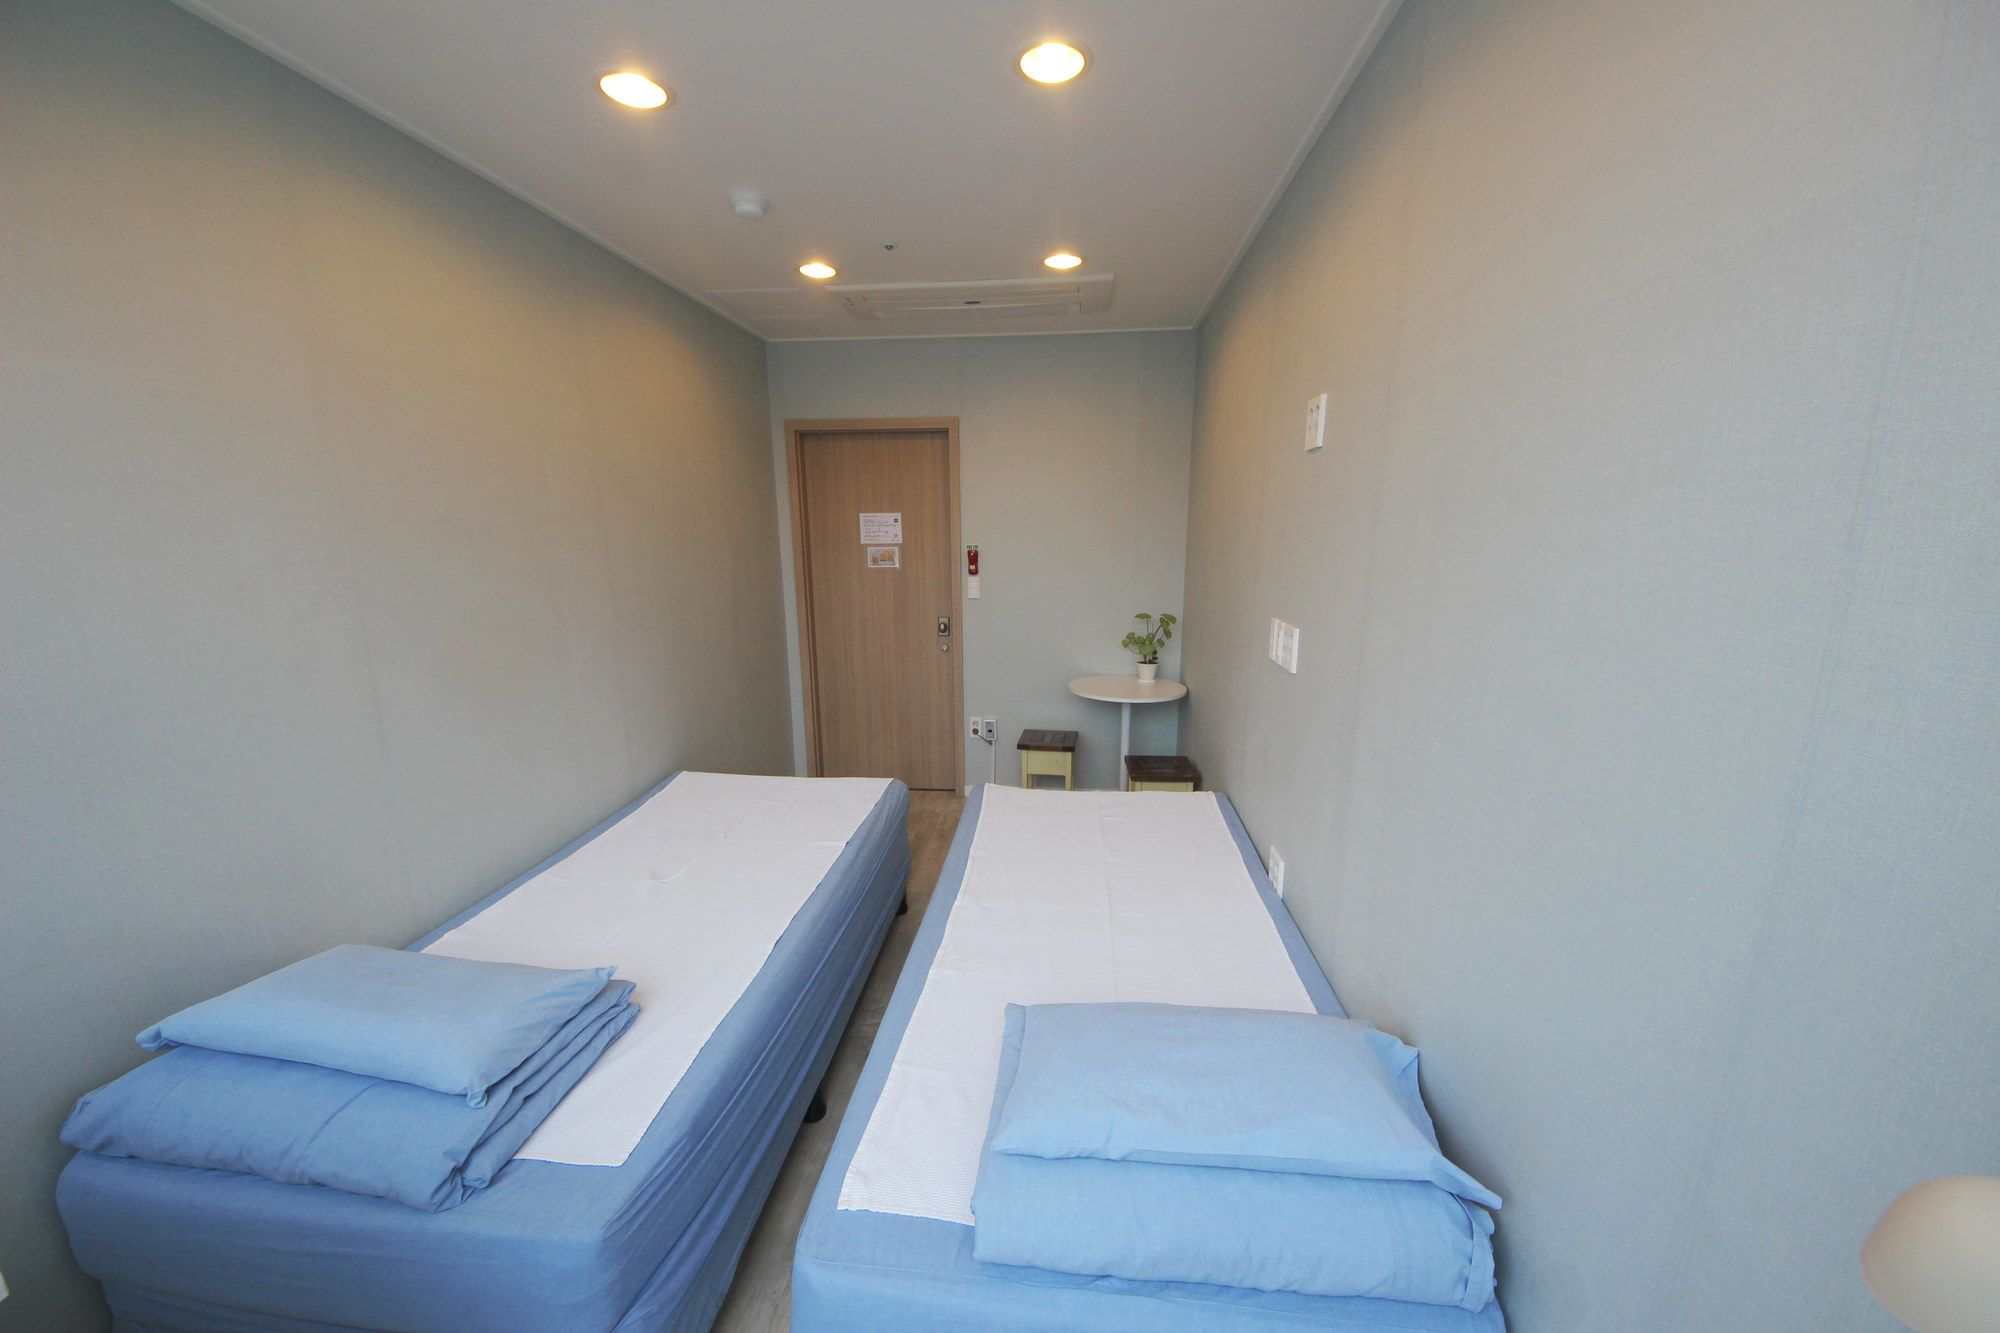 Gallery image of Hostel The New Day